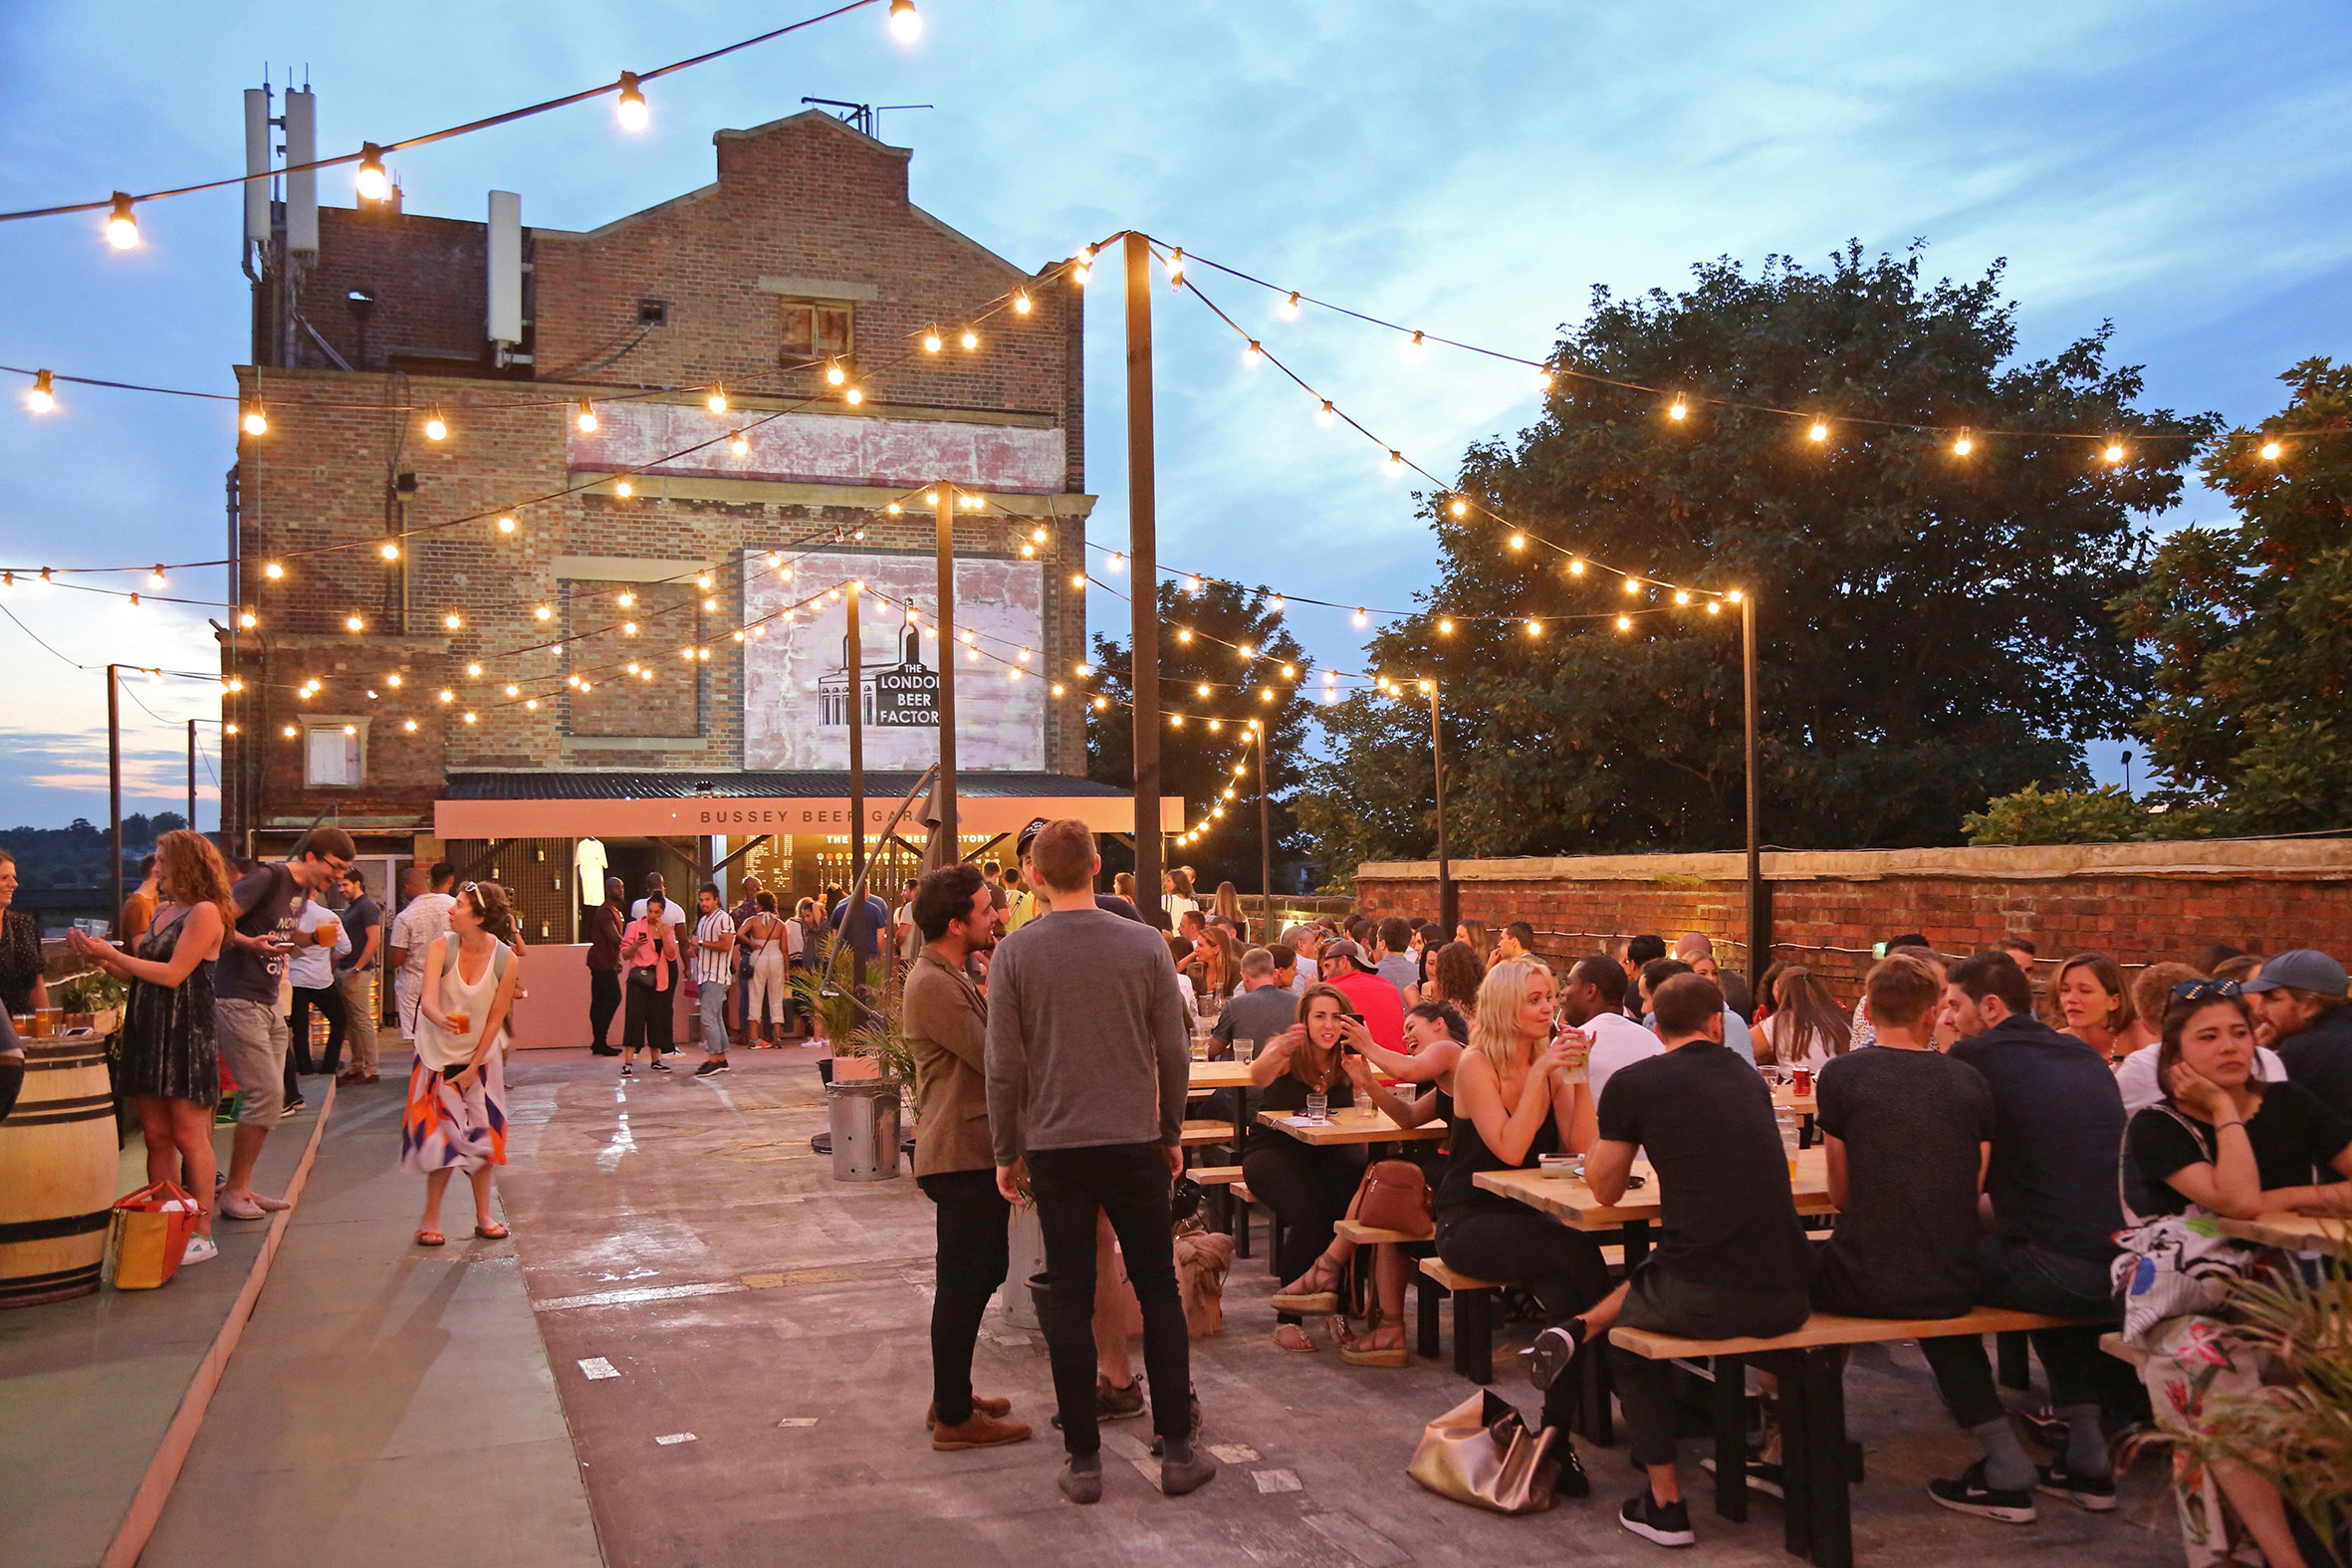 The Bussey Beer Garden